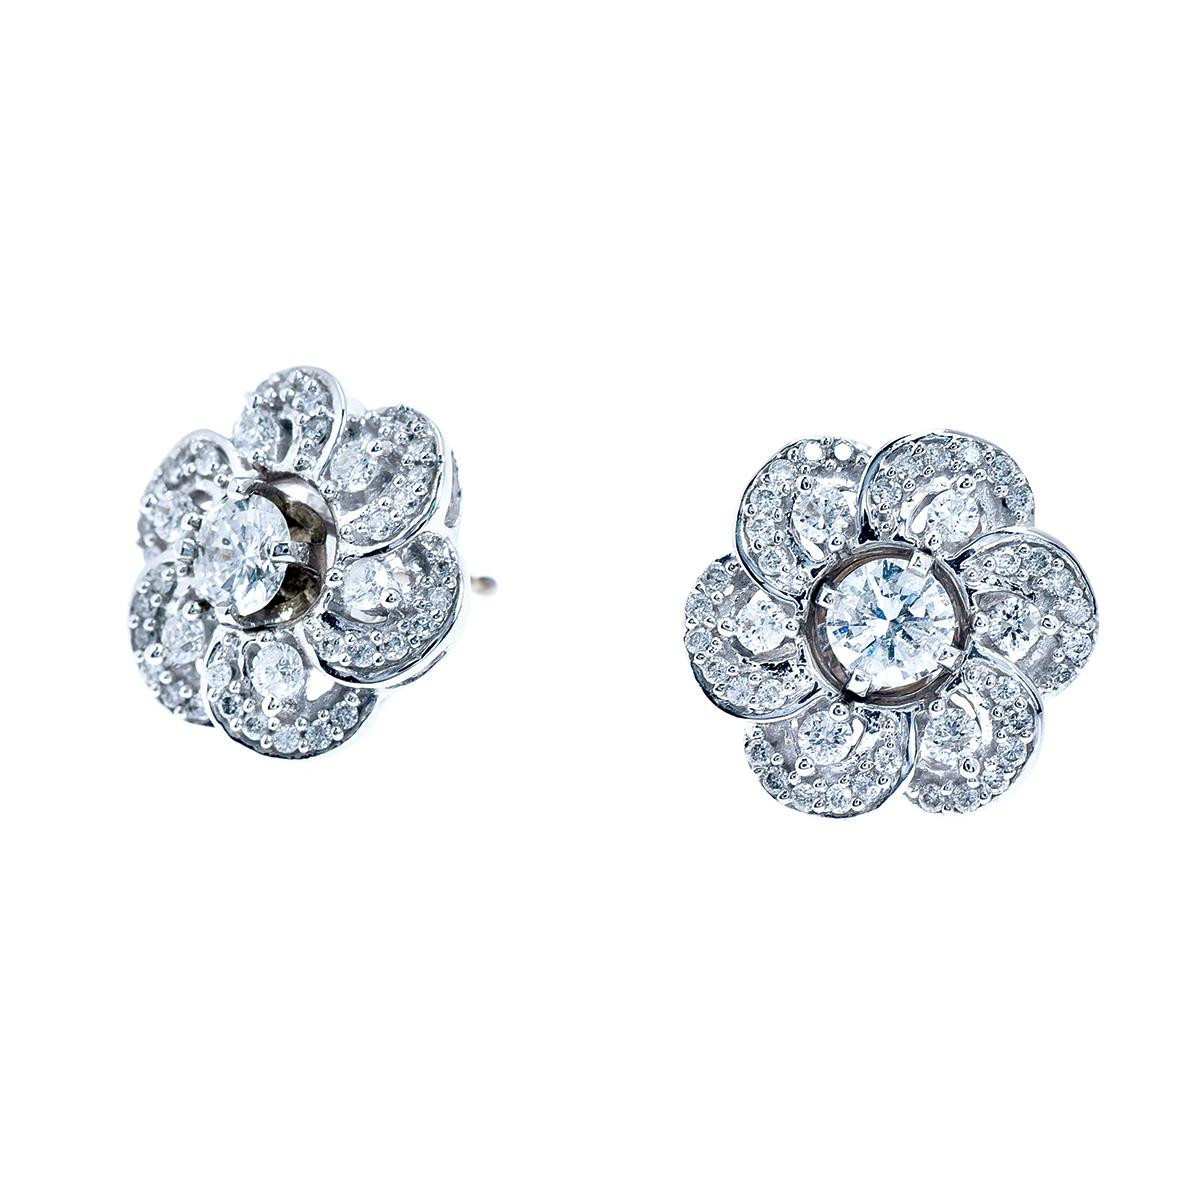 14k White Gold Diamond Earrings and Earring Jackets